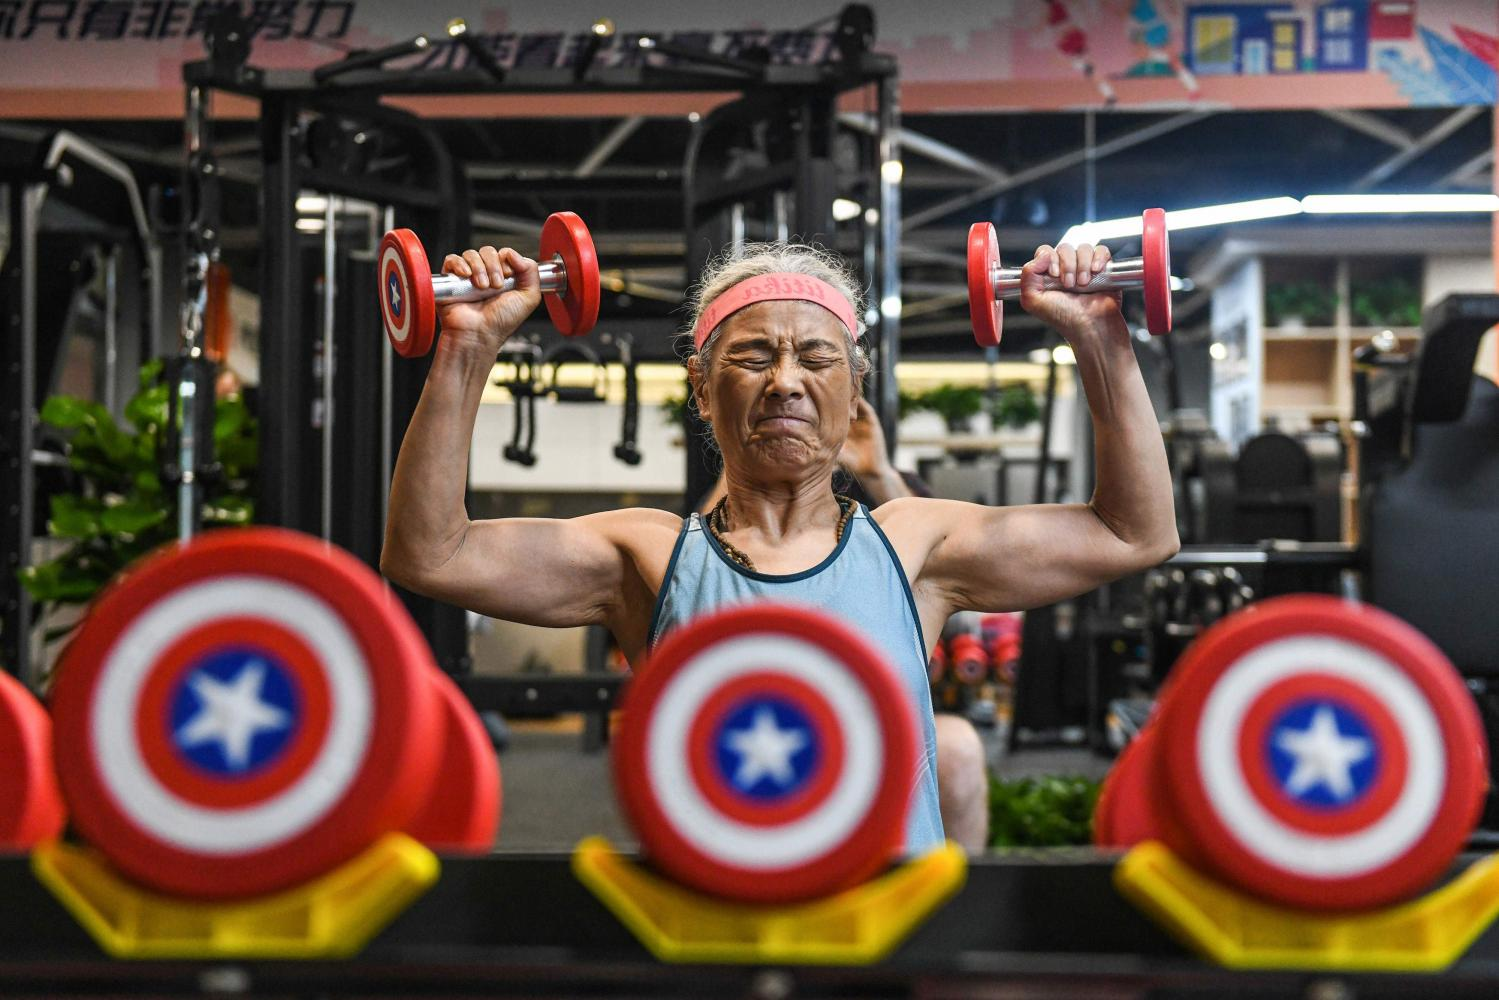 68-year-old fitness grandma proves hit in China